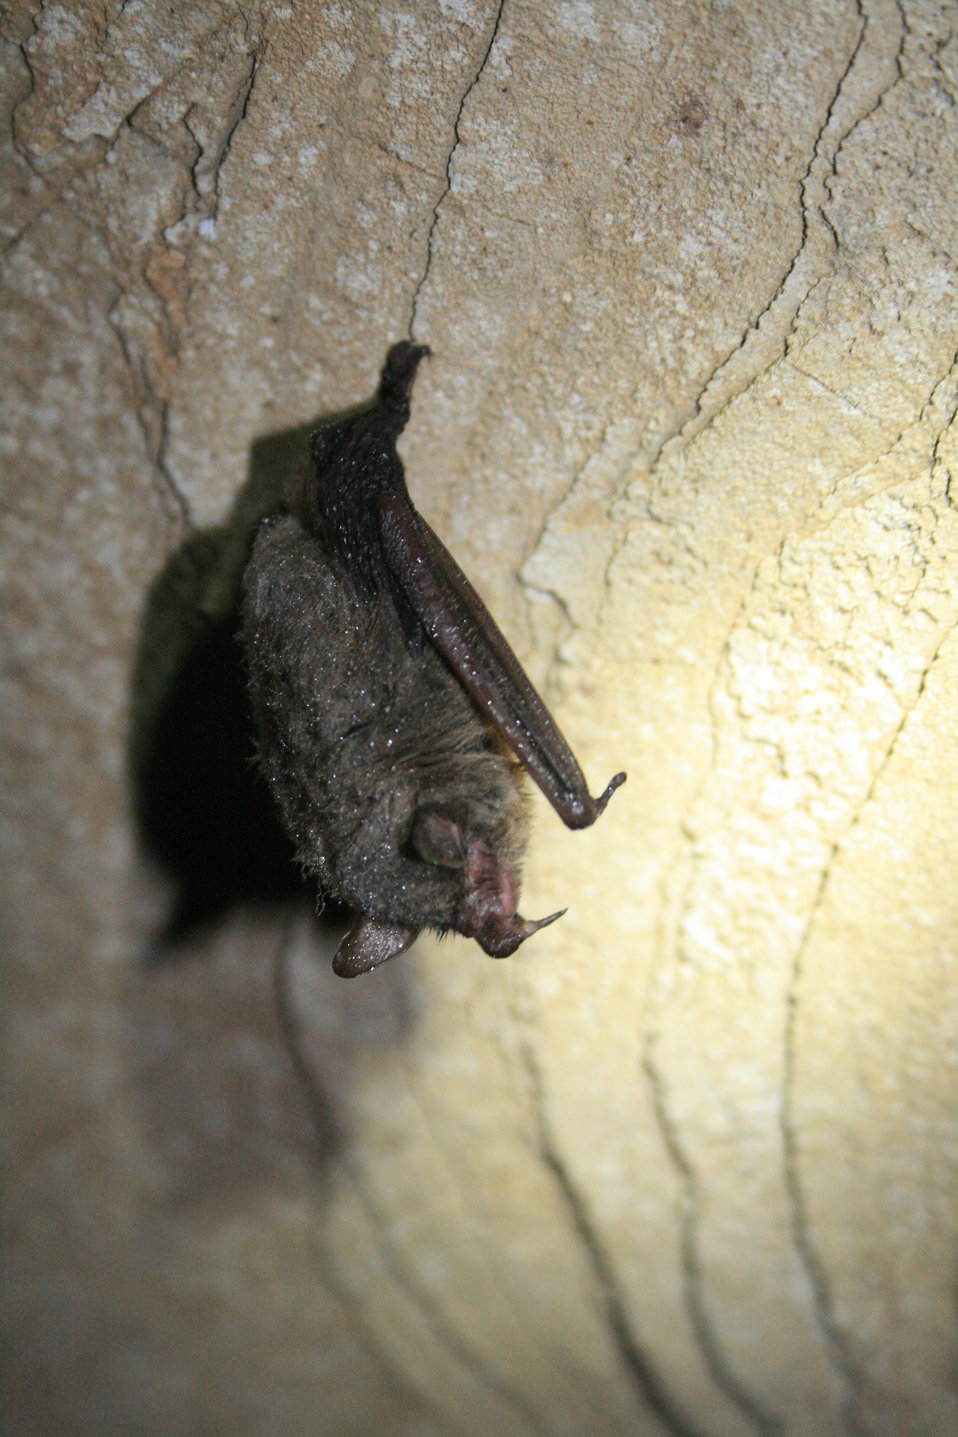 healthy hibernating Indiana bat